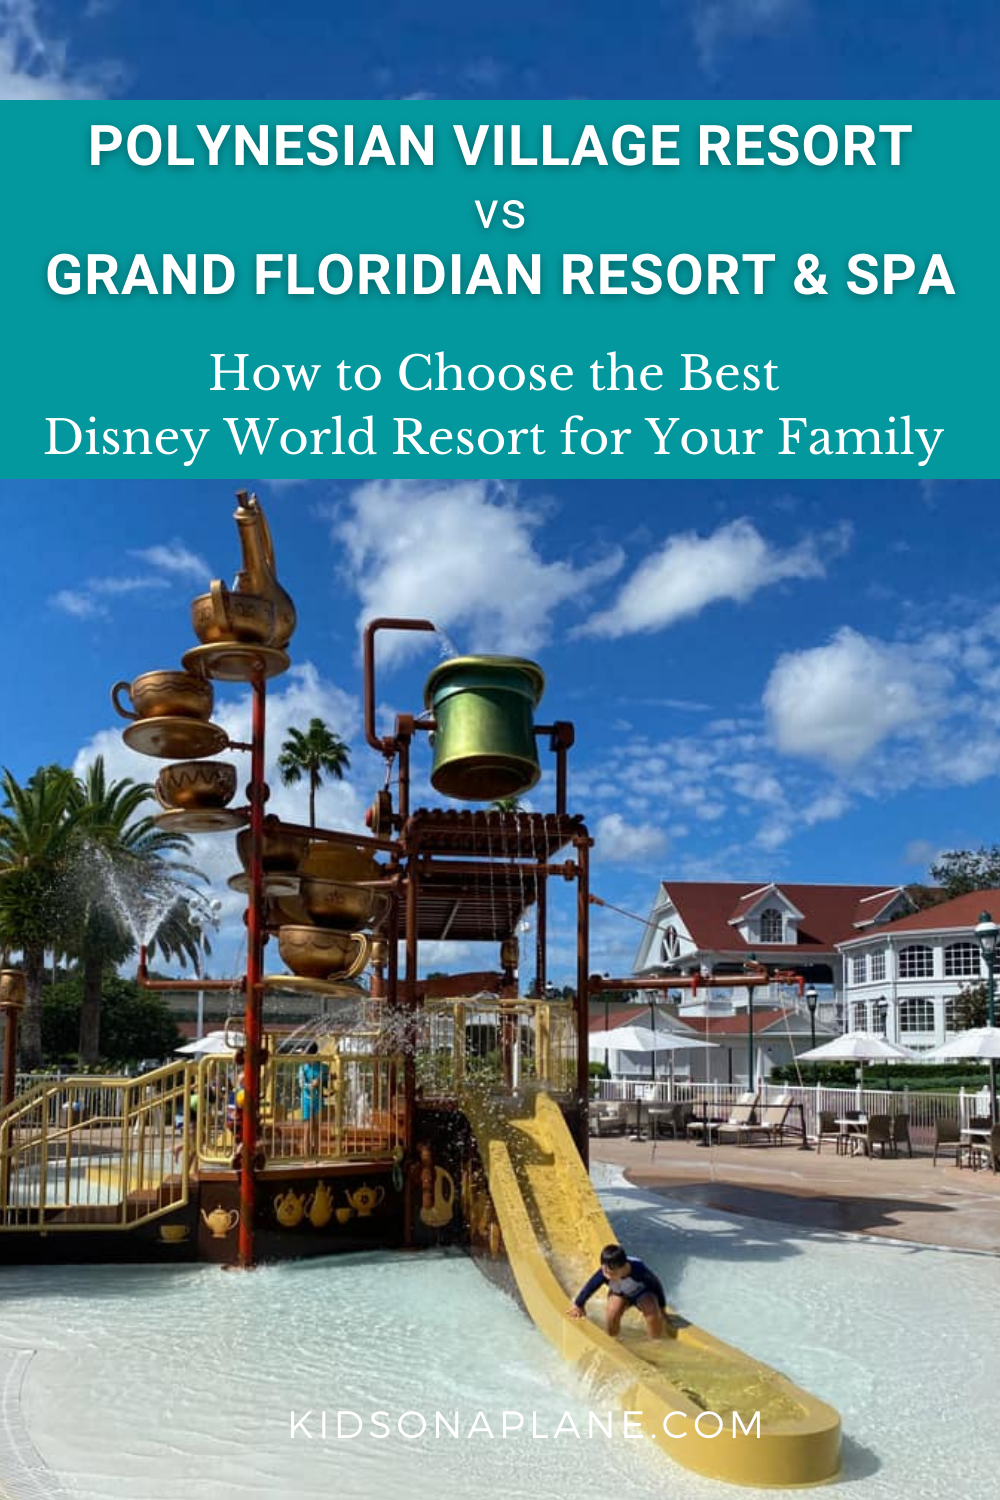 Disney World Polynesian Village Resort vs Grand Floridian - Which is the best deluxe resort for your family